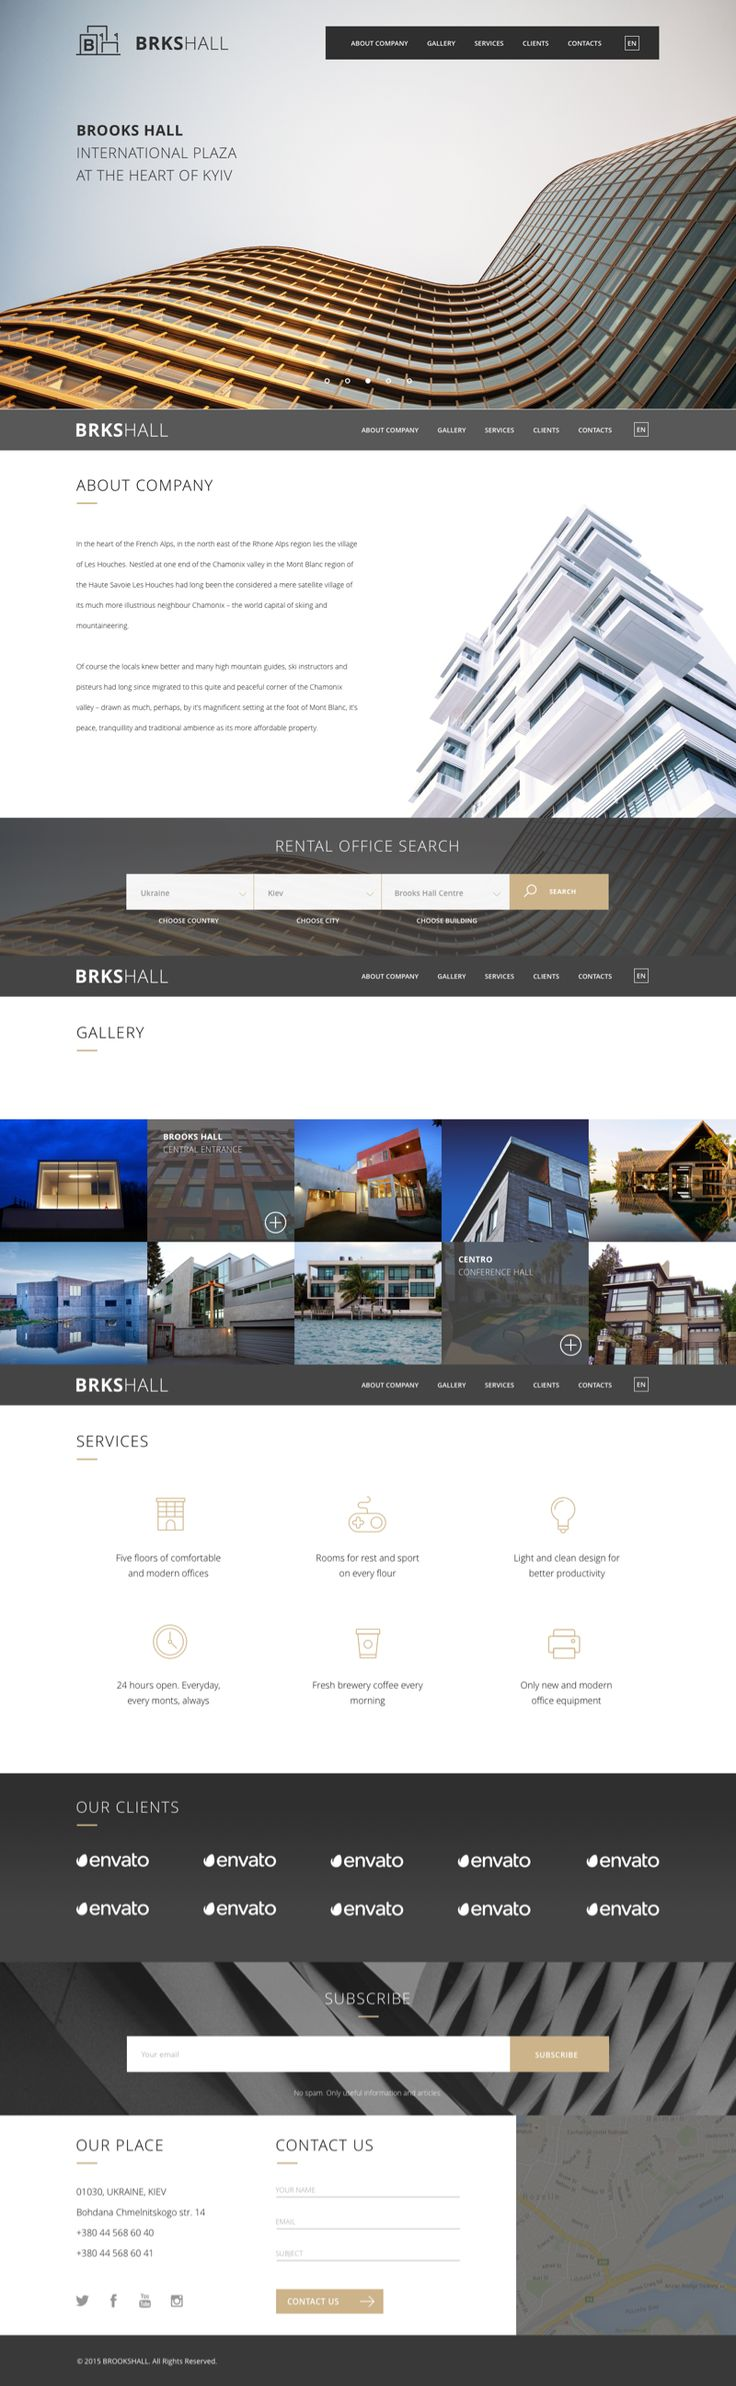 BrooksHall is a Real estate theme. It is specially designed for realtors, property management services company, commercial space, retail and office center, business center and others. It has advanced properties search functionality. Brooks WP maintain multiple location fields to provide search behavior from Country to Building type. Brooks theme supports up to 3 location dropdowns. In the theme options it is possible to change the descriptions of these dropdowns like numbers or labels.